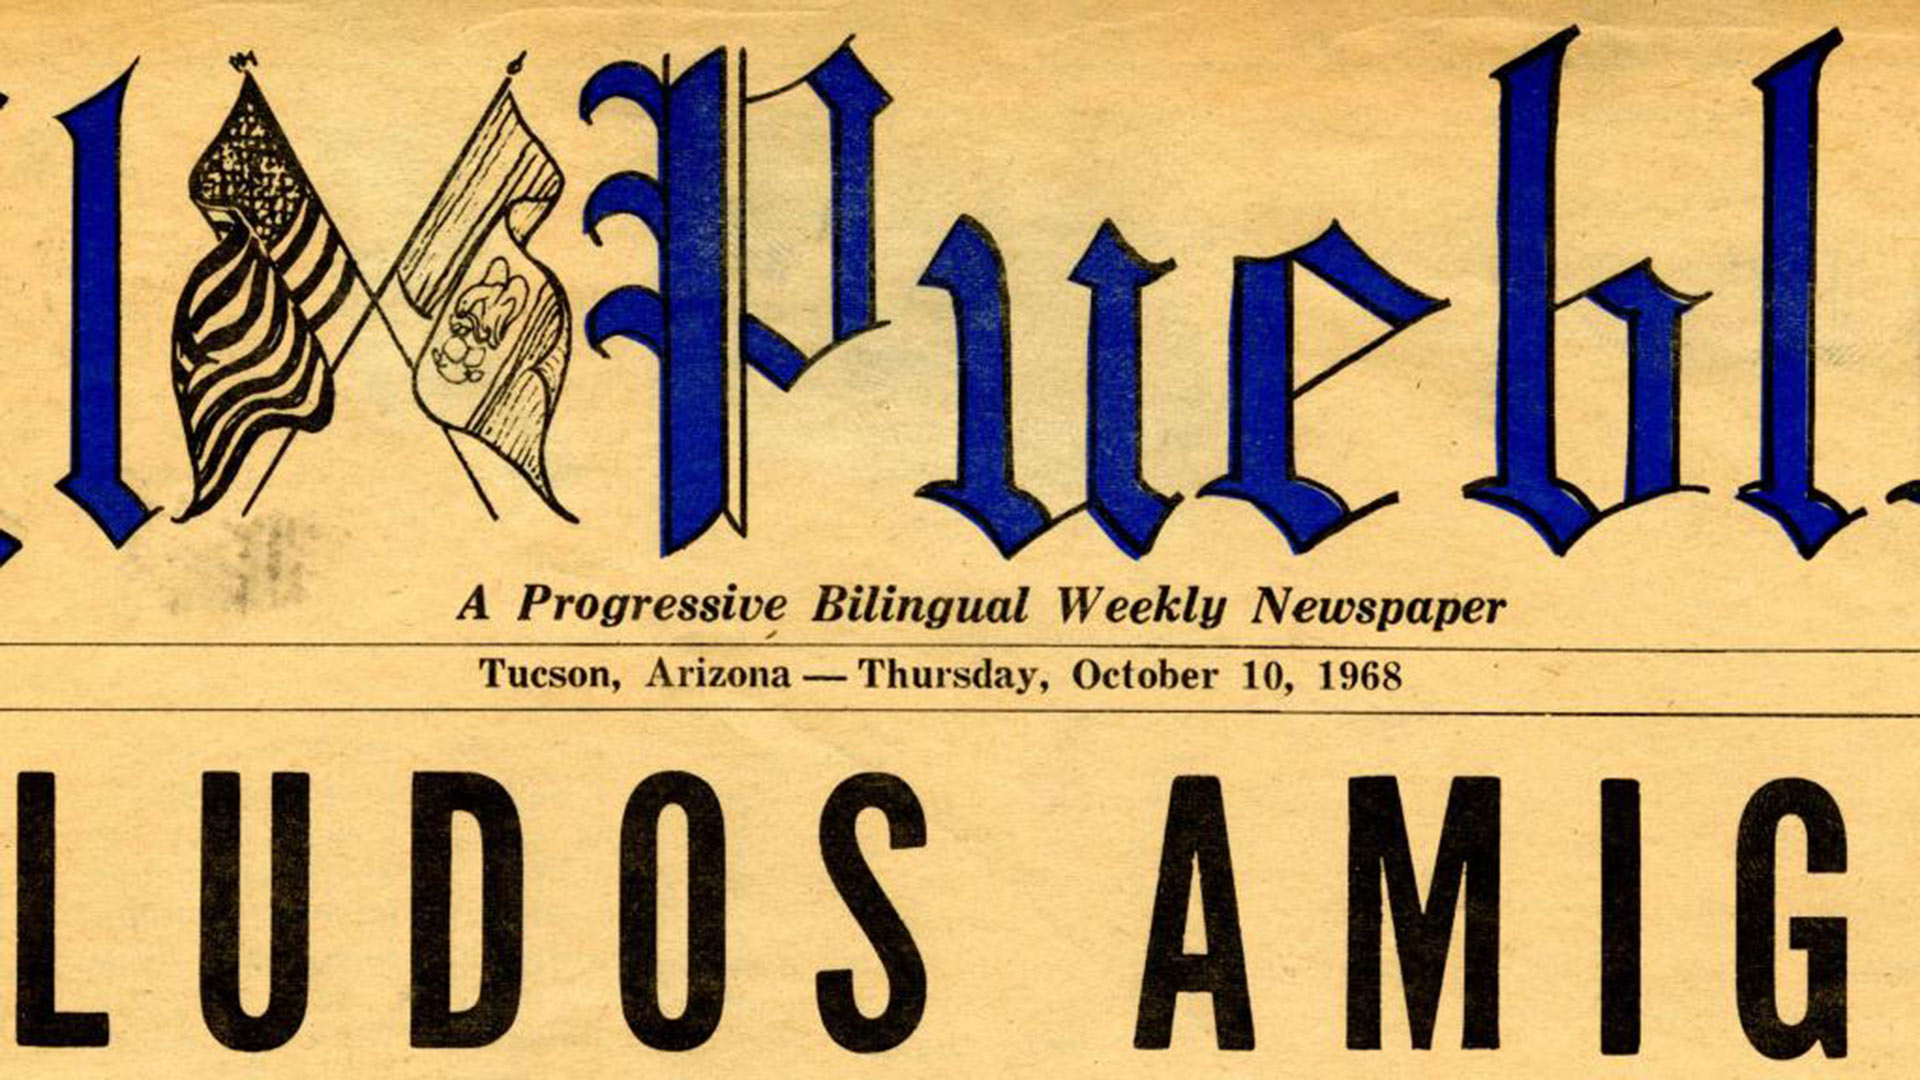 Nameplate of El Pueblo, a bilingual (Spanish/English) newspaper published in Tucson, Arizona from 1968-1969, from the Historic Mexican & Mexican American Press collection.